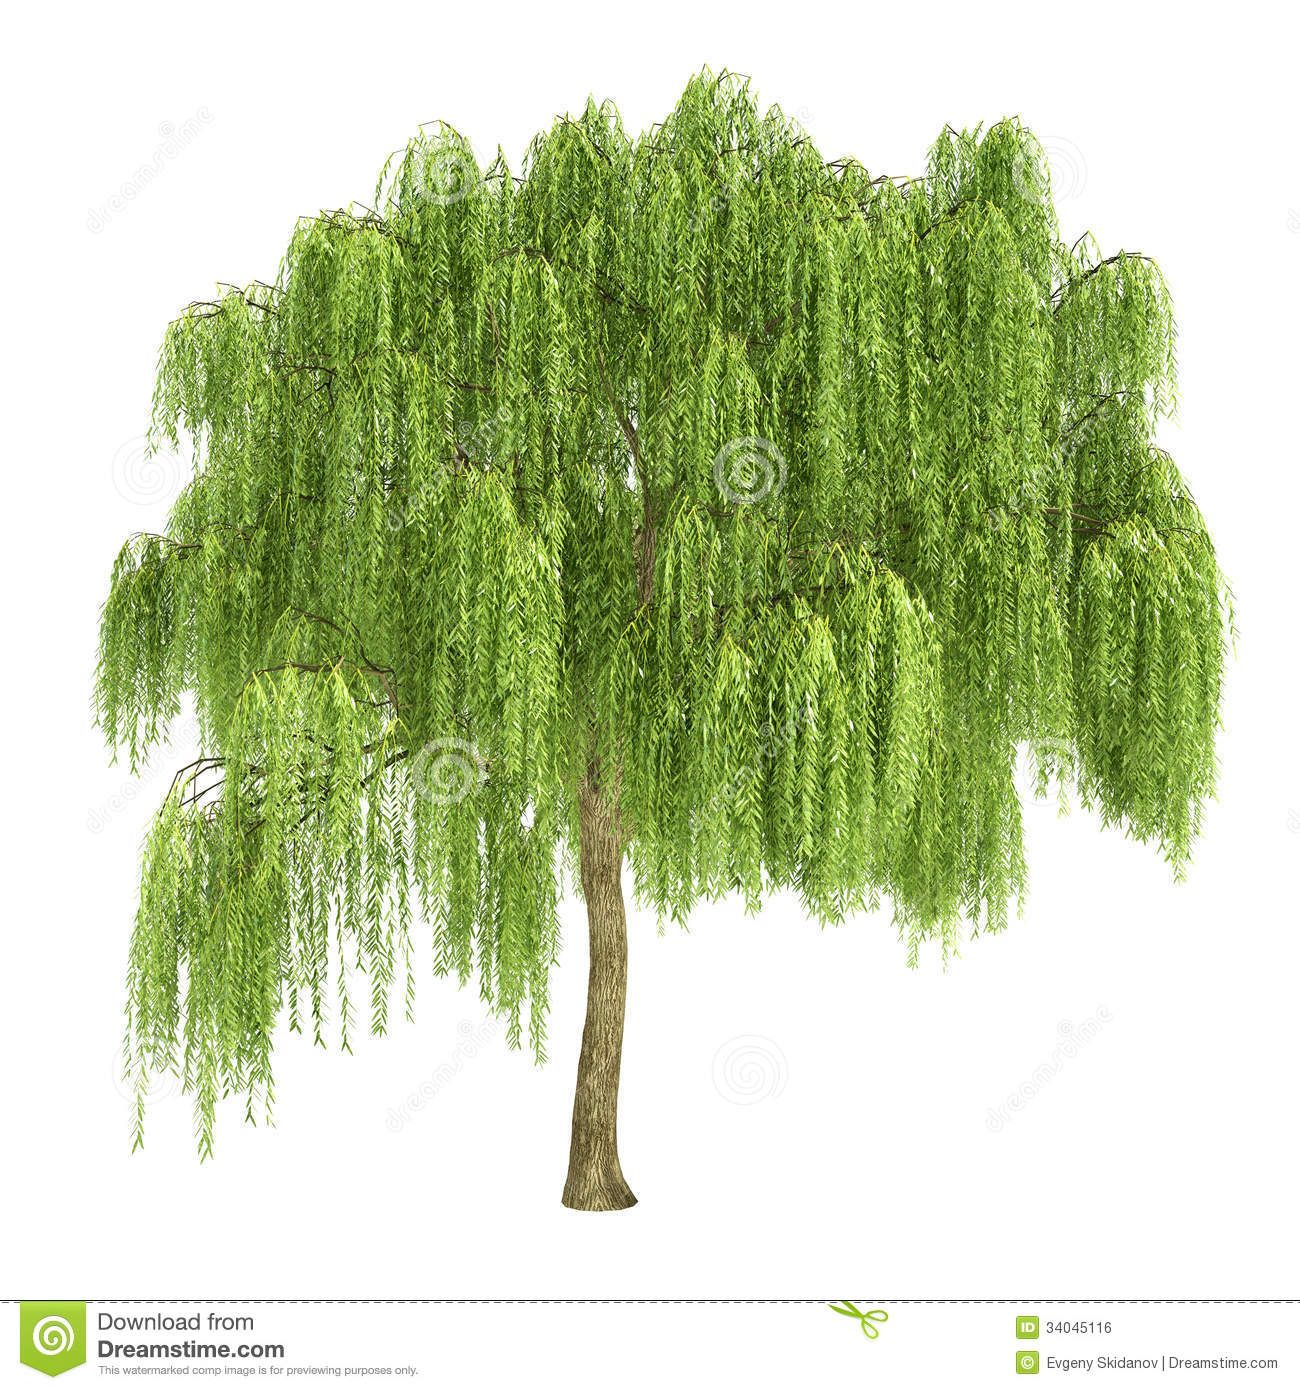 willow tree drawing - Google Search | Milifiori Potential ...